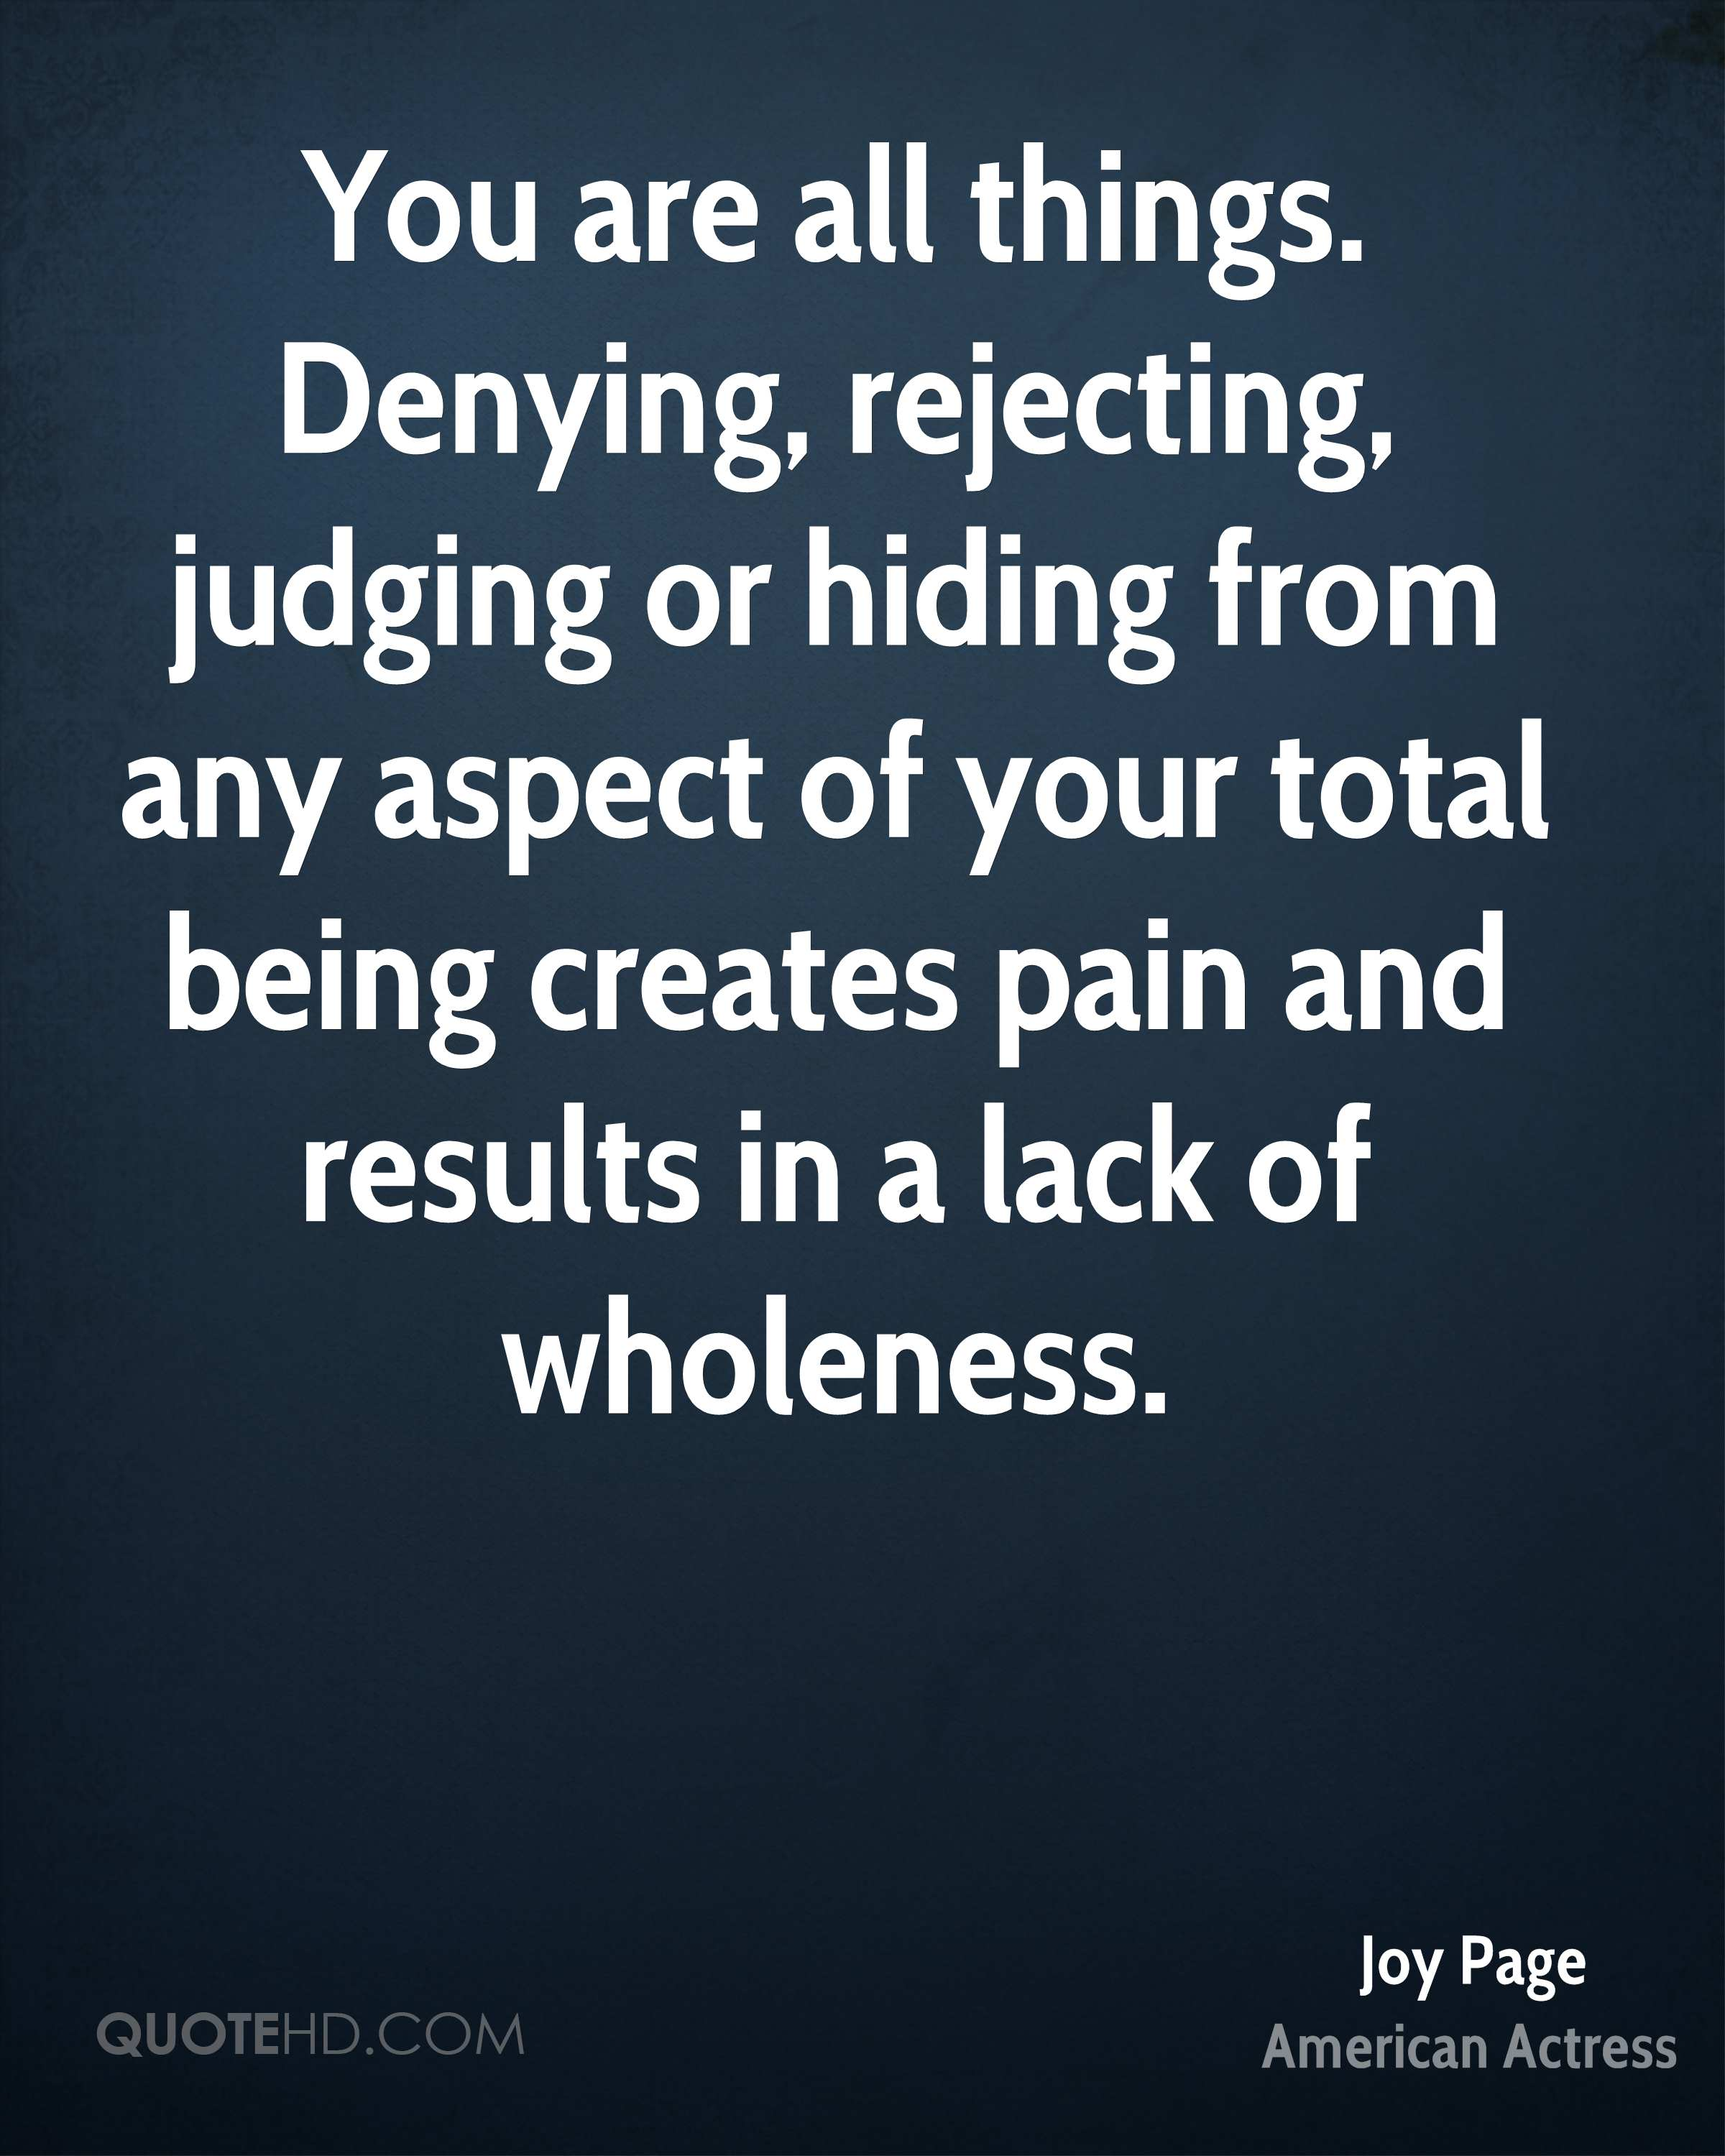 You are all things. Denying, rejecting, judging or hiding from any aspect of your total being creates pain and results in a lack of wholeness.